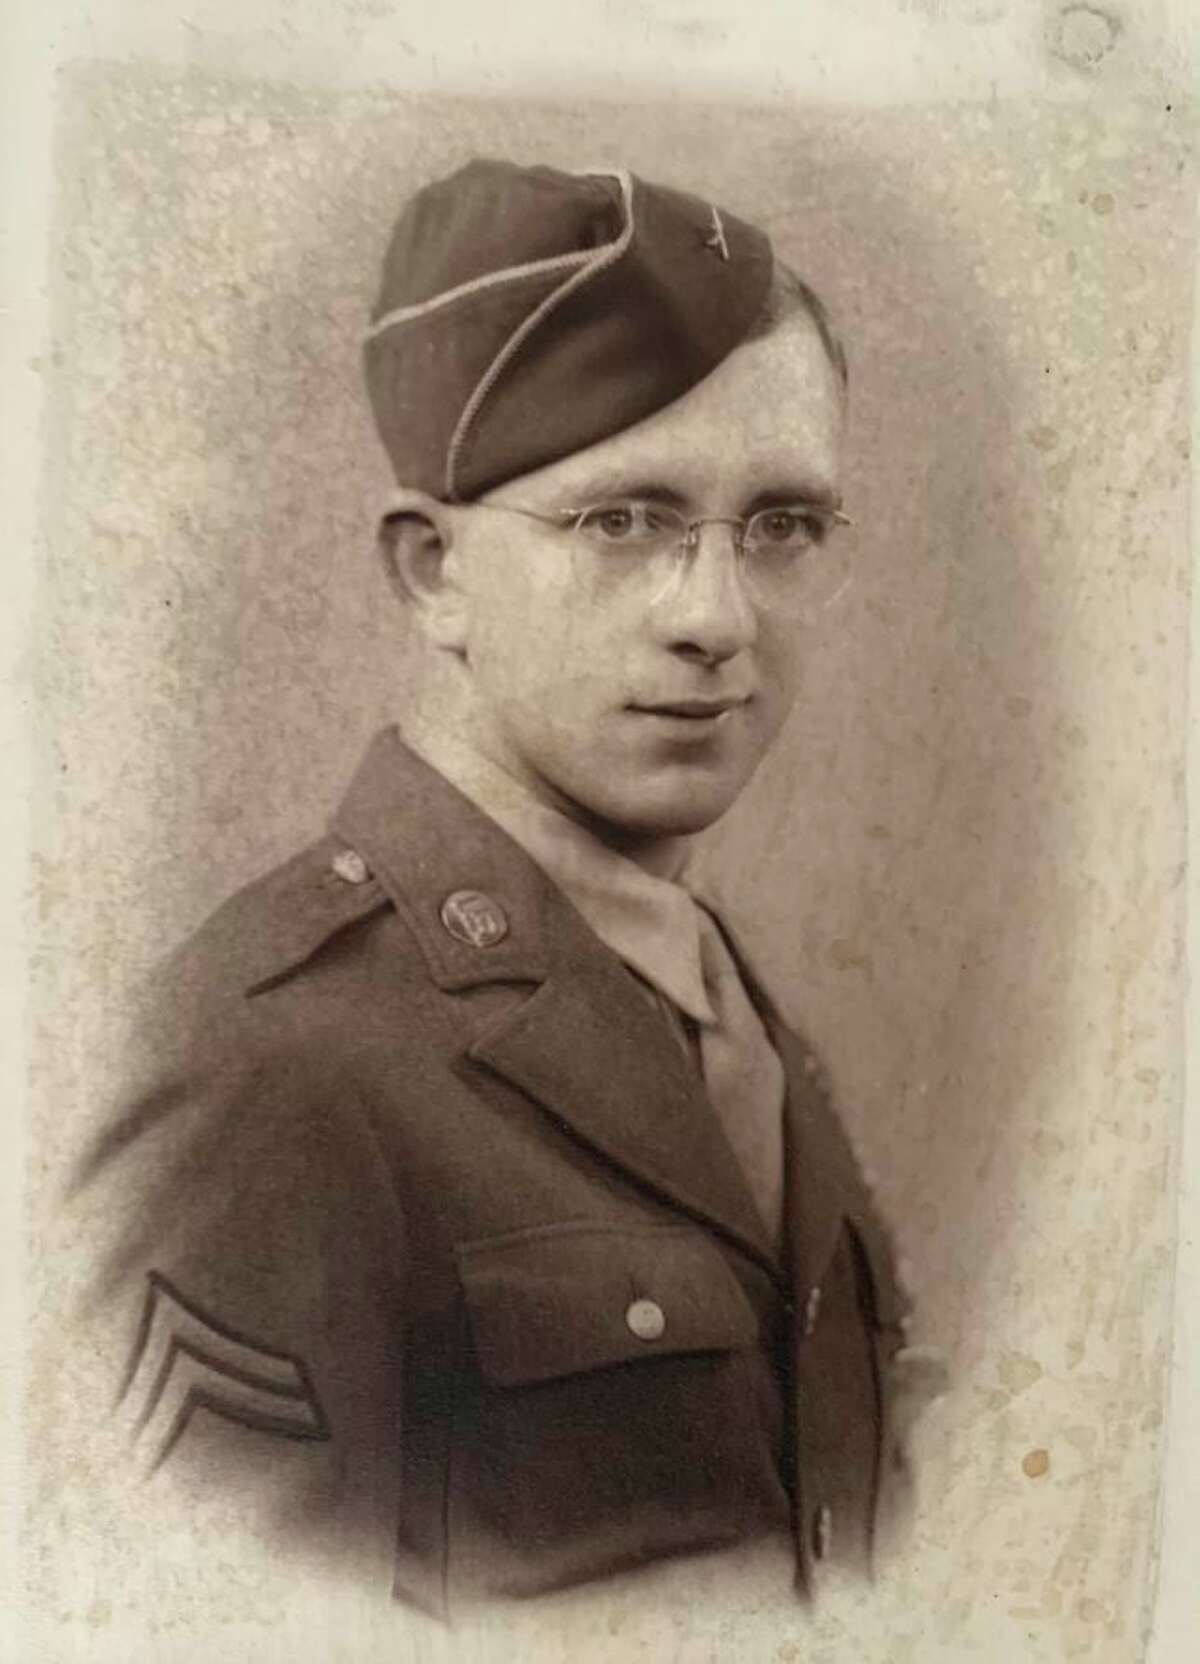 Sergeant Edwin O. Pochert was striped of his stripes after in incident in WWII, with the promise to have them reinstated. After receiving an honorable discharge shortly after, following an injury, his rank remained recorded as a Private First Class. His work to reinstate his stripes was passed down to his daughter after his passing in 2012. (Courtesy Photo)